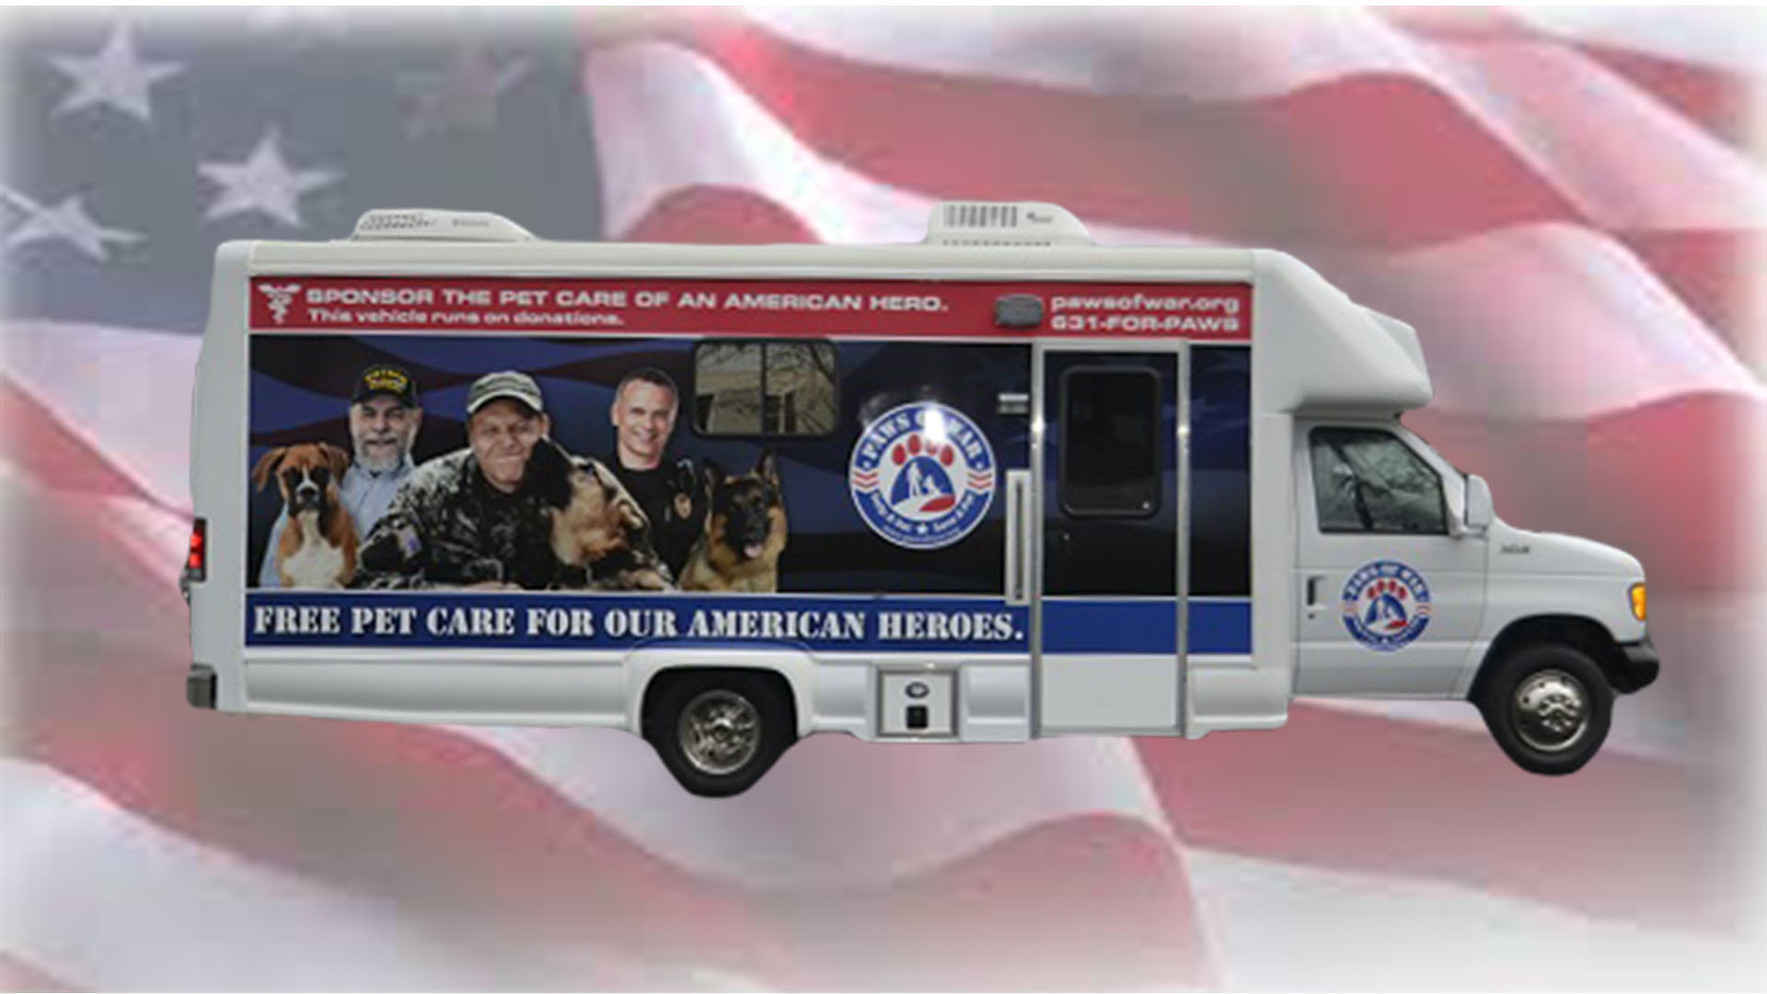 Sponsor the veterinary care of a pet for a wounded warrior! image